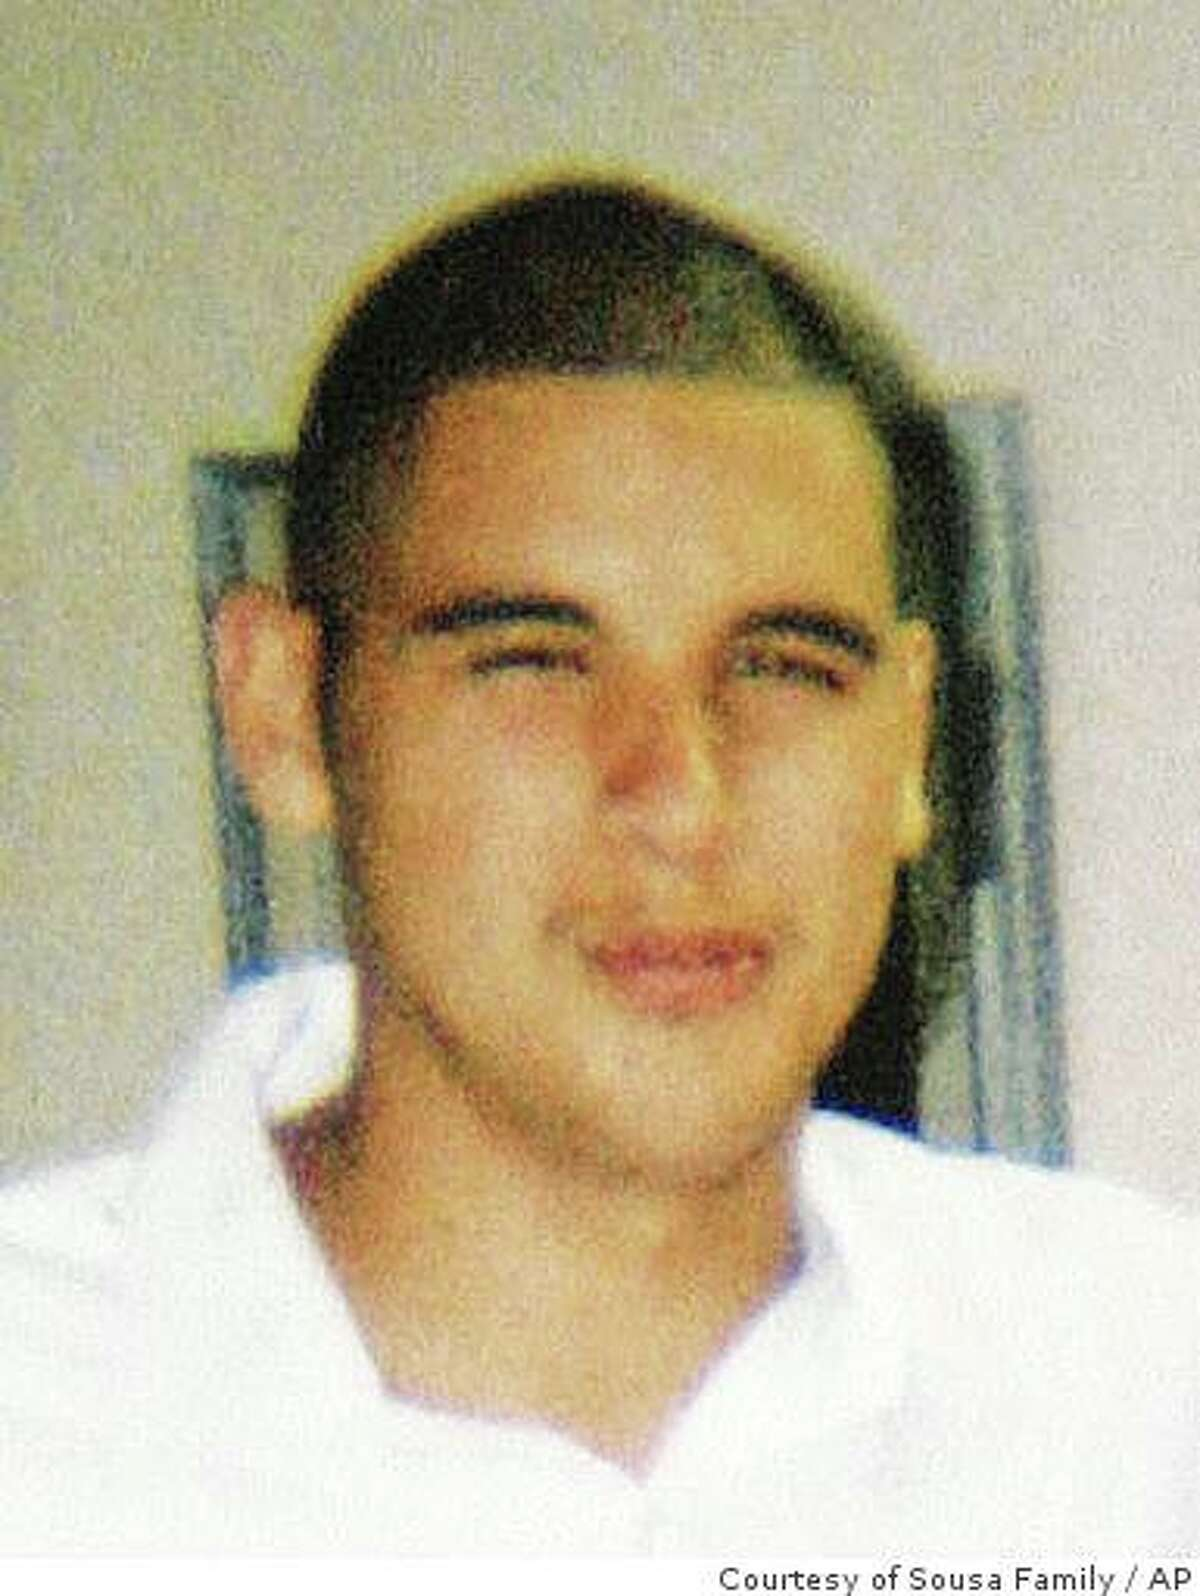 This undated handout photo released by the Sousa family on Wednesday Dec. 26, 2007 shows Carlos Sousa Jr. in San Jose, Calif. Carlos Sousa Jr., 17, of San Jose, Calif. was killed by a tiger that escaped at the San Francisco Zoo on Christmas Day Tuesday Dec, 25, 2007. (AP Photo/Courtesy of the Sousa Family) ** NO SALES **